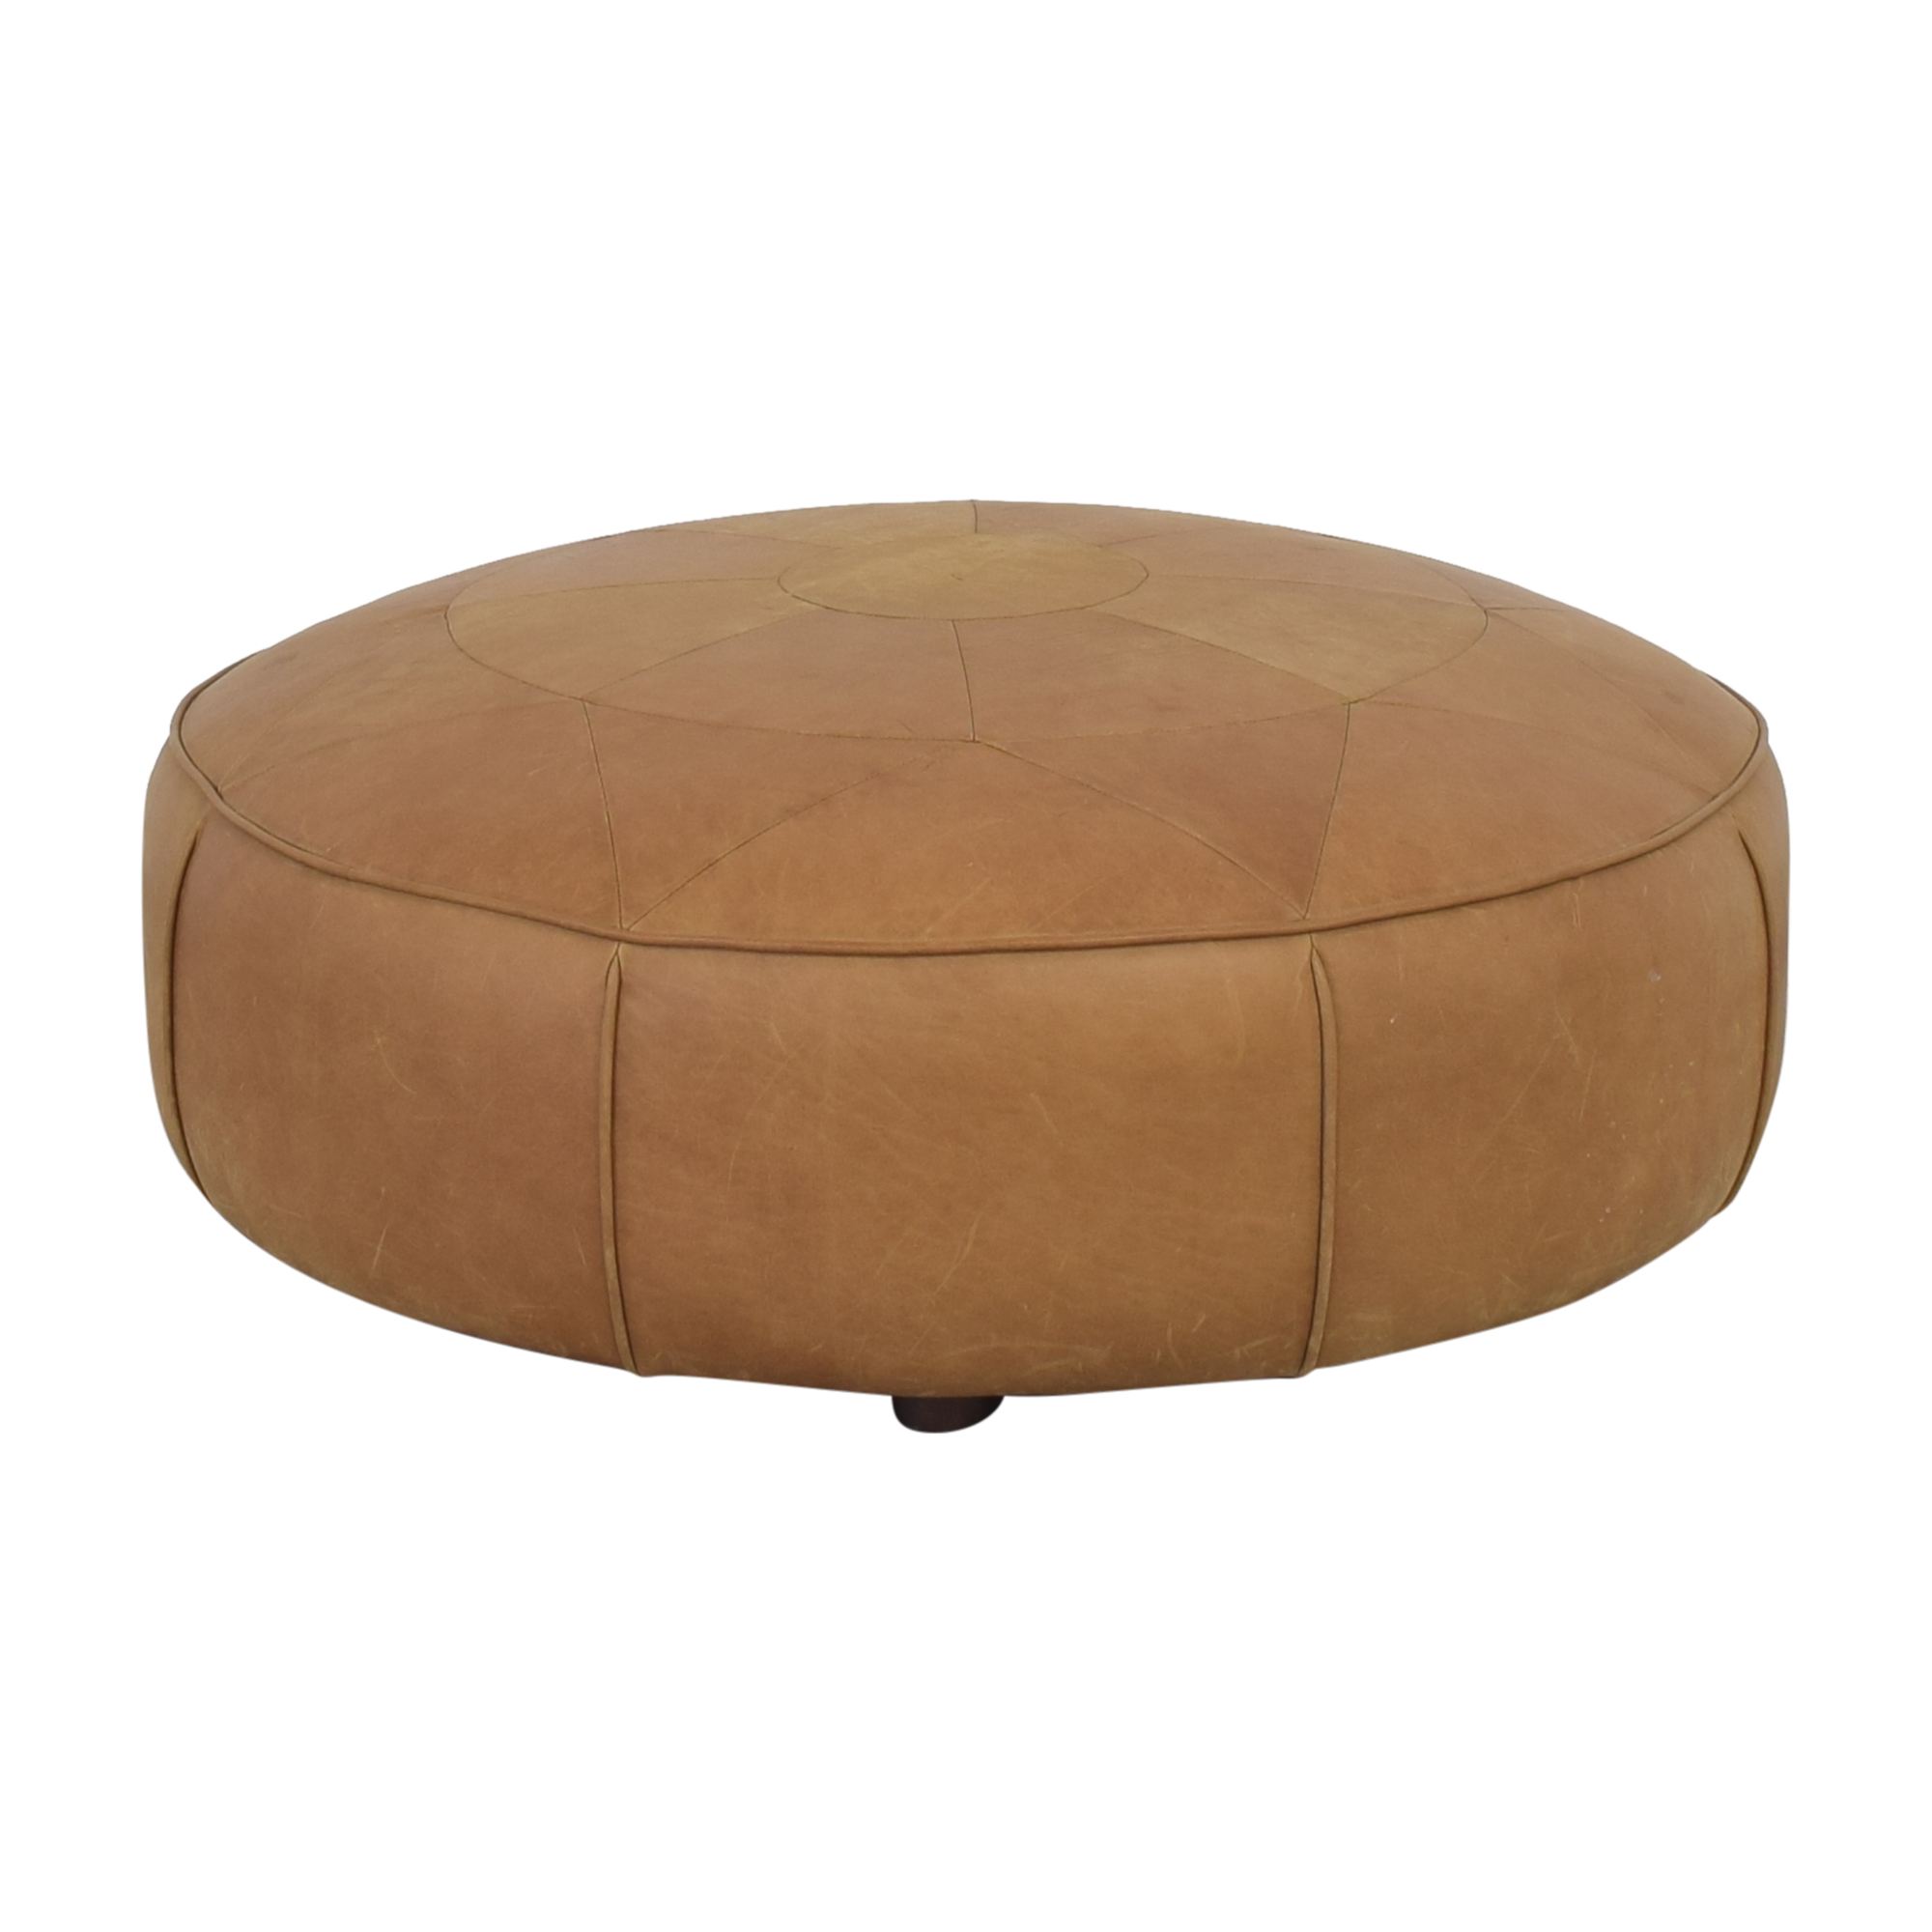 buy Article Article Timpani Ottoman online